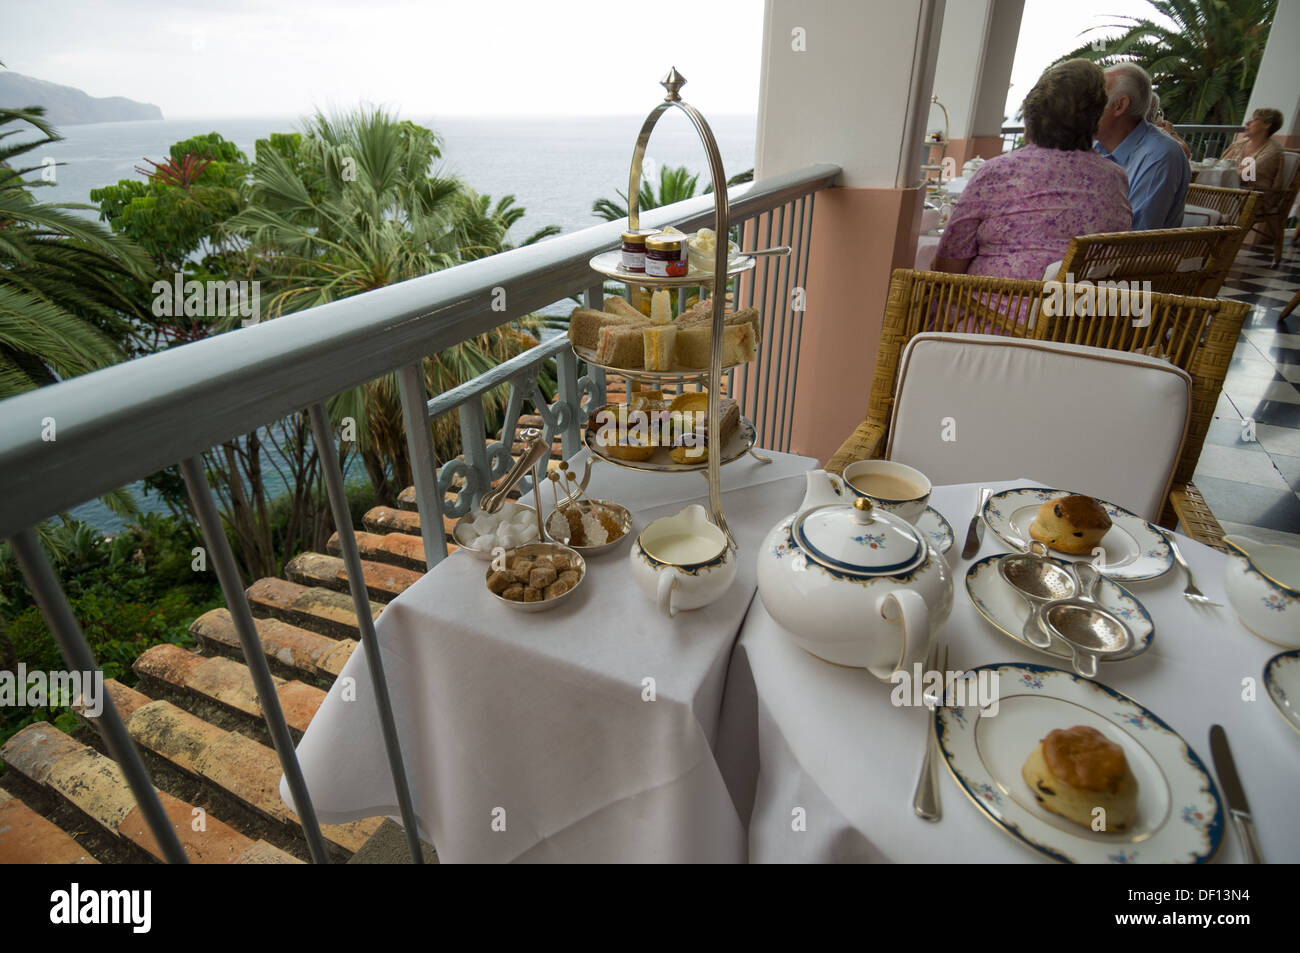 afternoon tea on the terrace at reid 39 s palace hotel funchal stock photo royalty free image. Black Bedroom Furniture Sets. Home Design Ideas